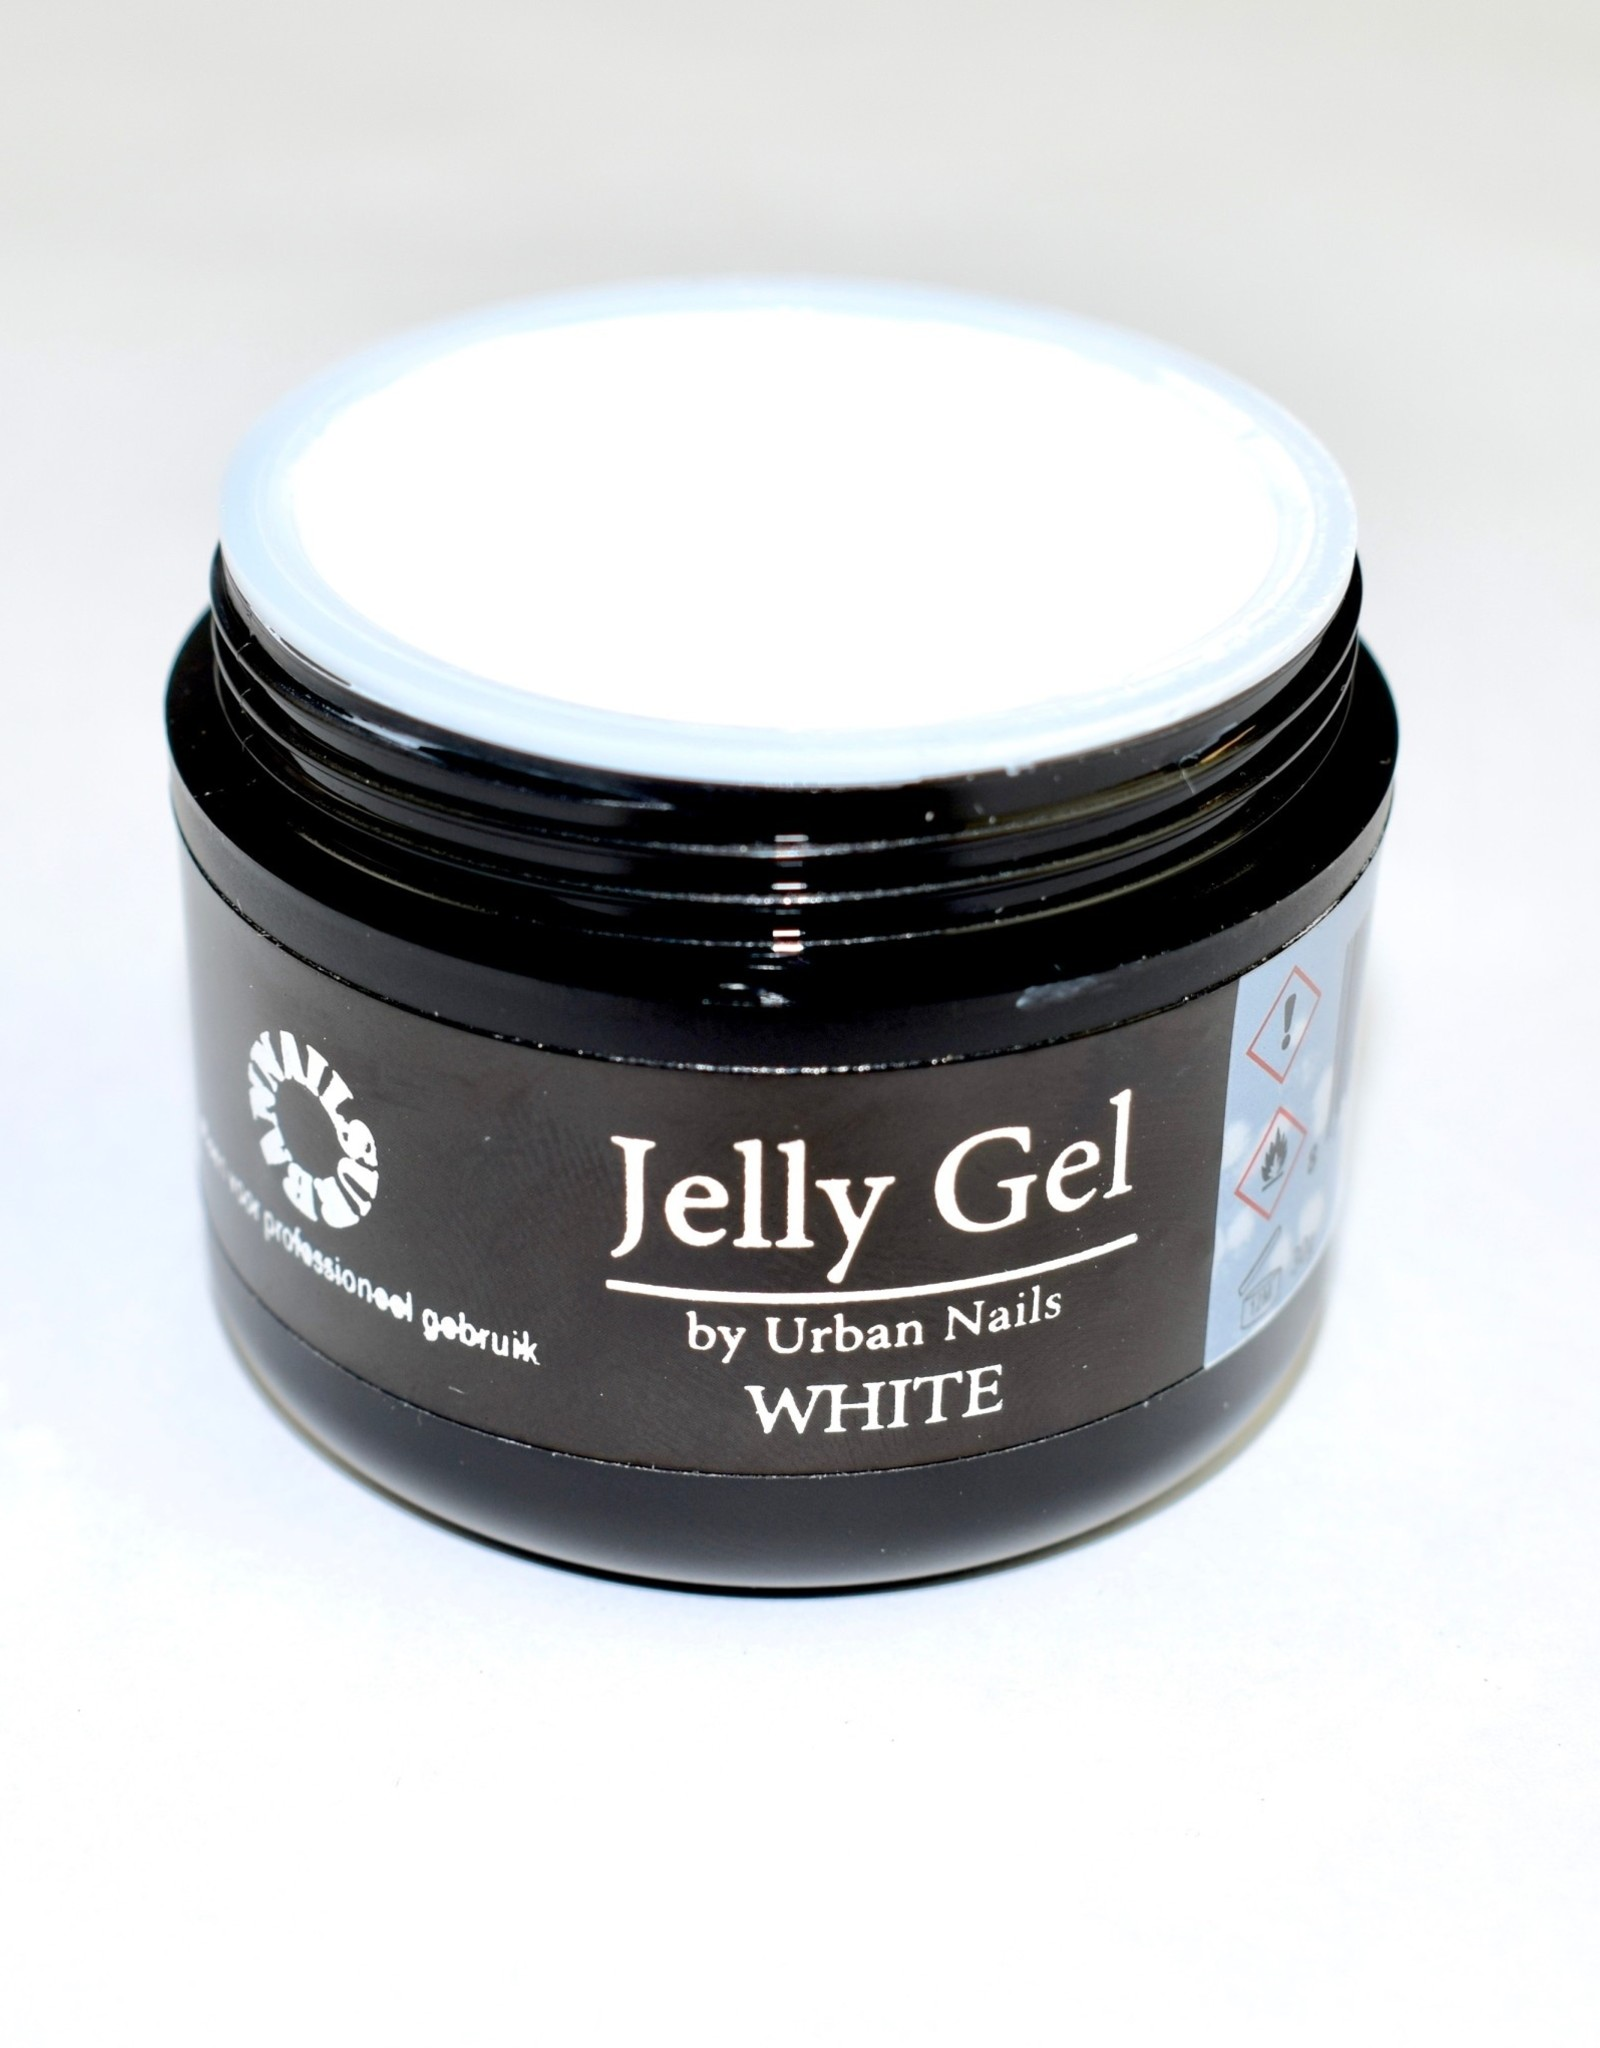 Urban Nails Jelly Gel White